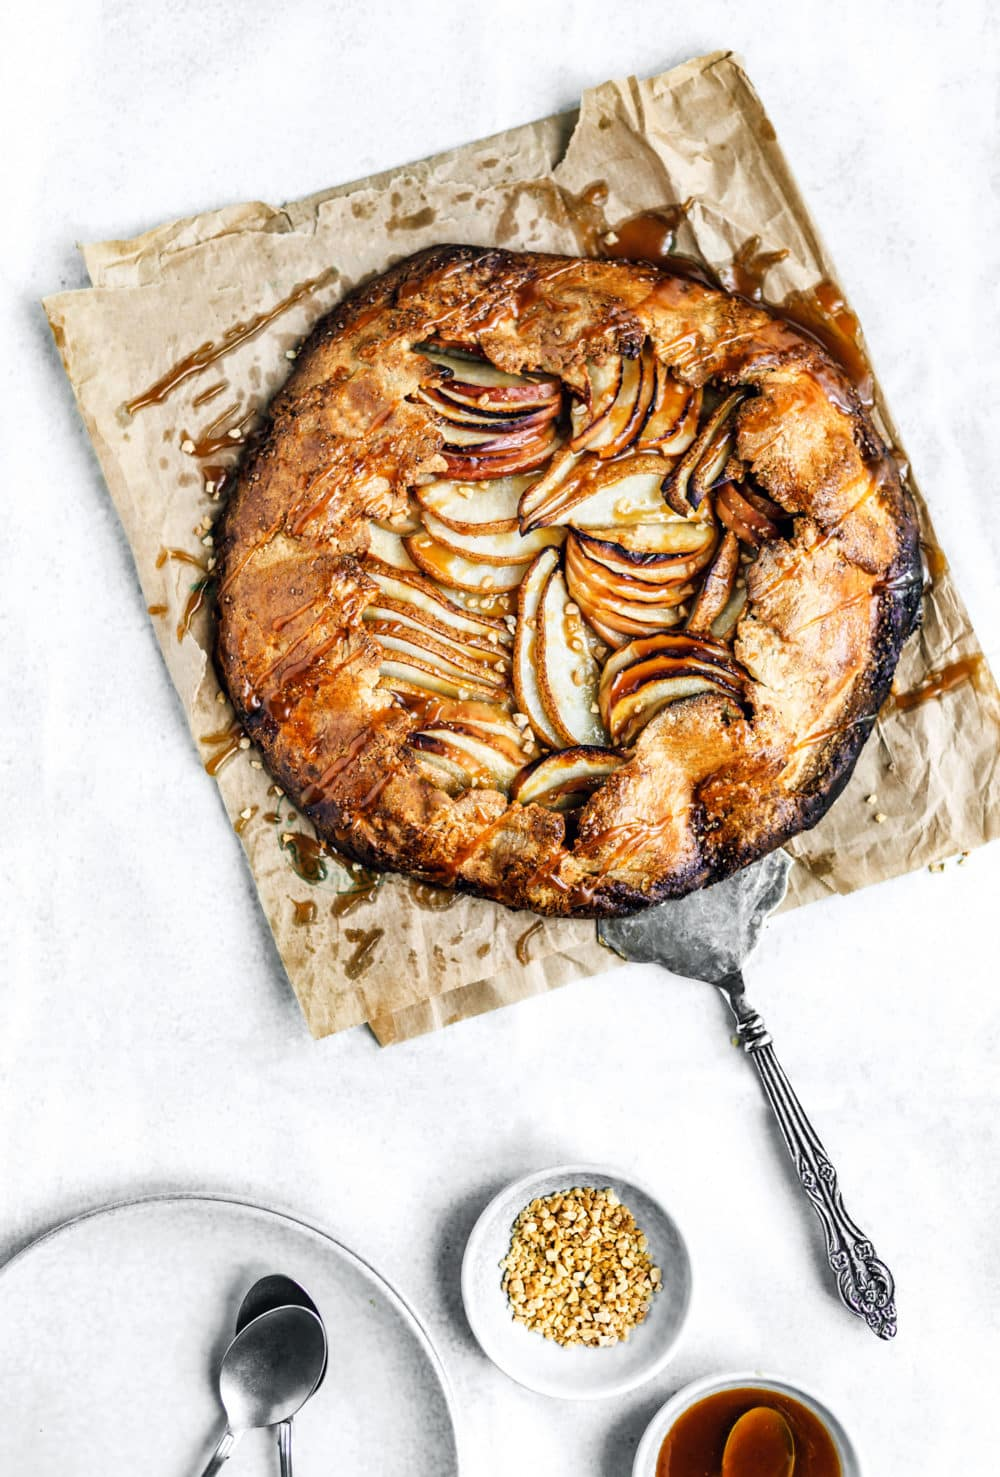 Rustic tart apple and pear